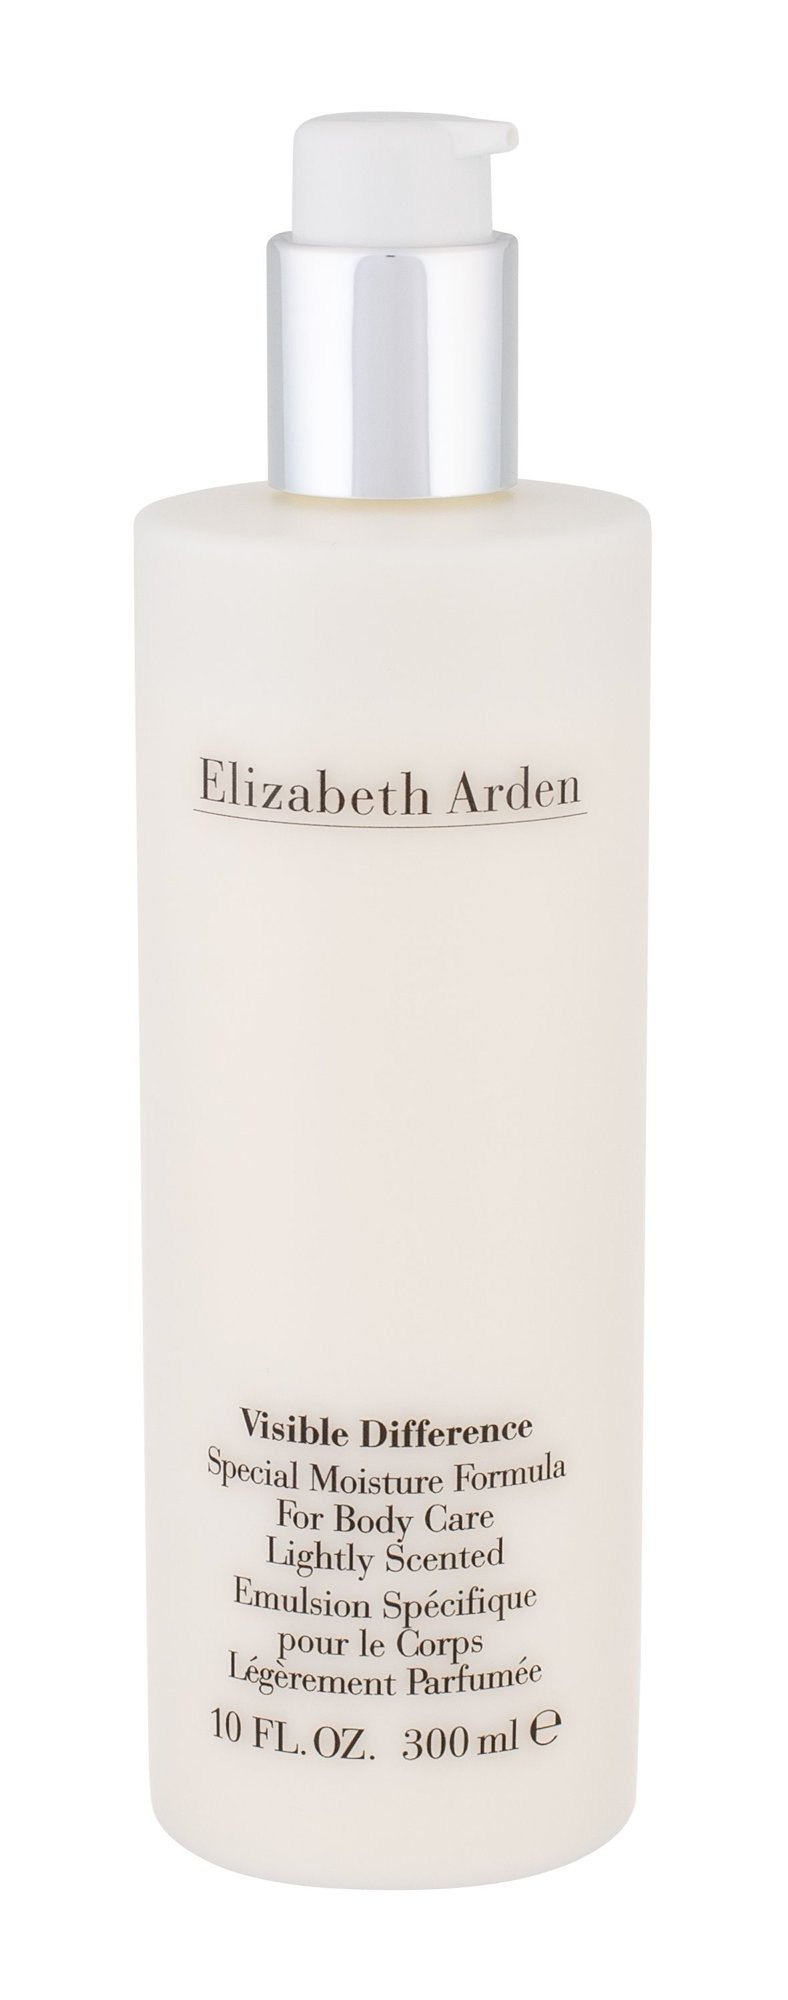 Elizabeth Arden Visible Difference Cosmetic 300ml